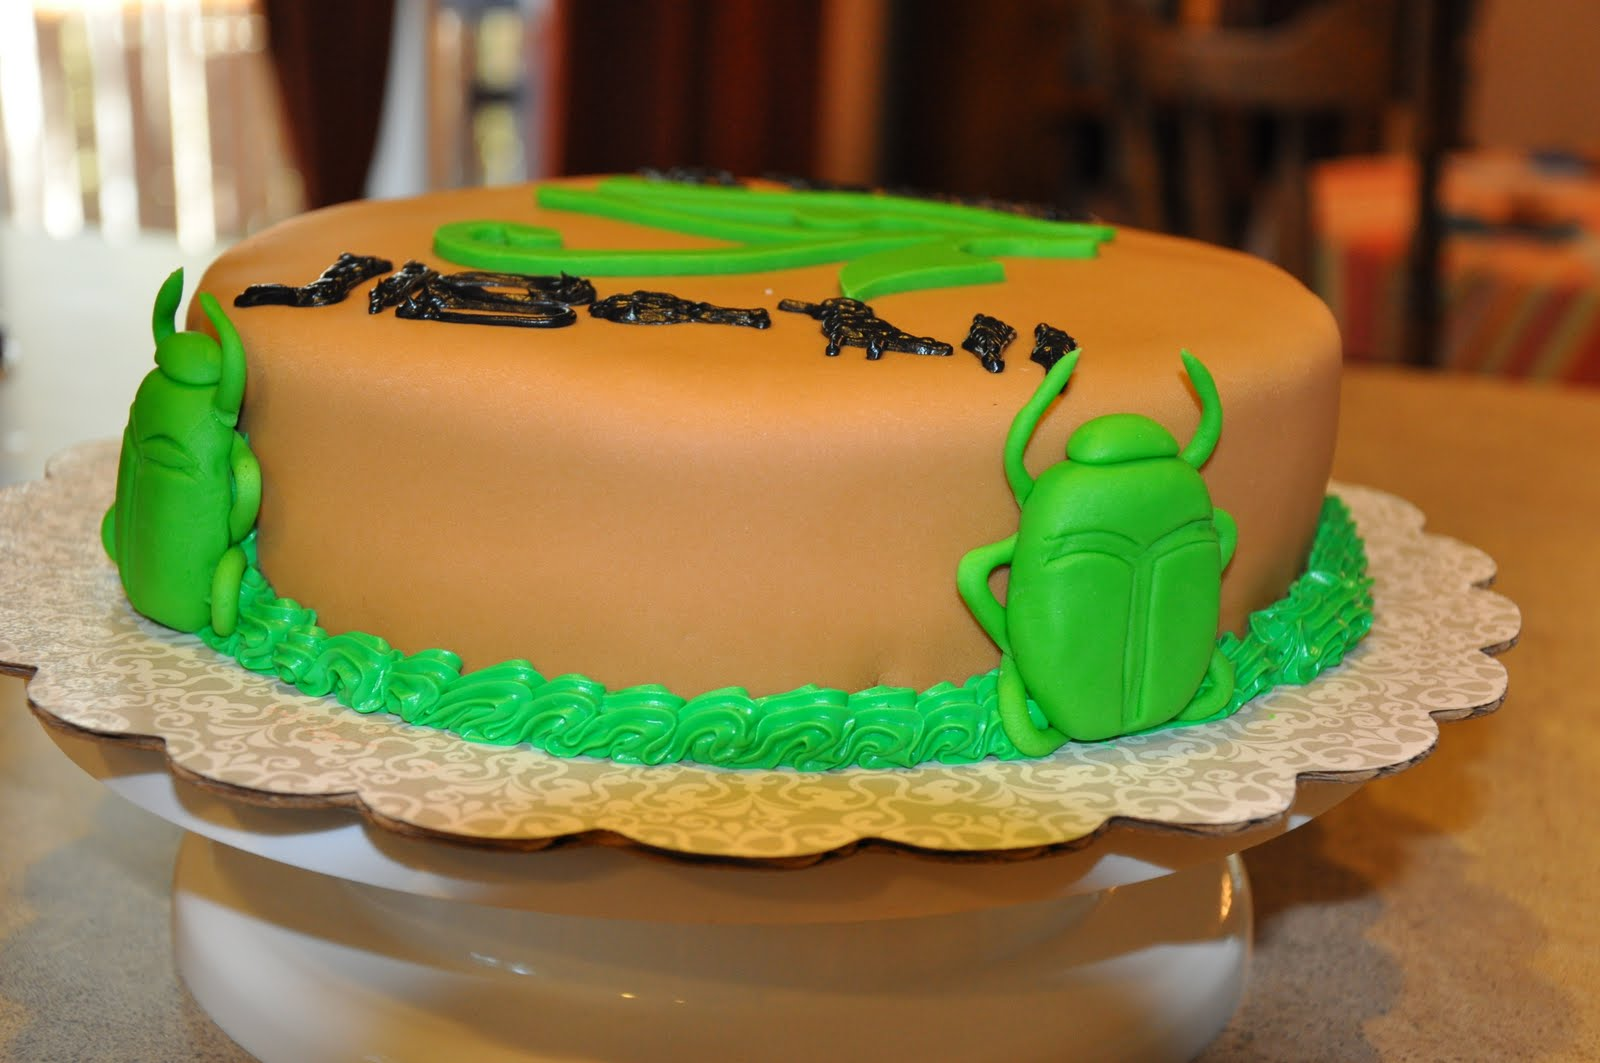 Egyptian Birthday Cakes http://cakecreationsbychristina.blogspot.com/